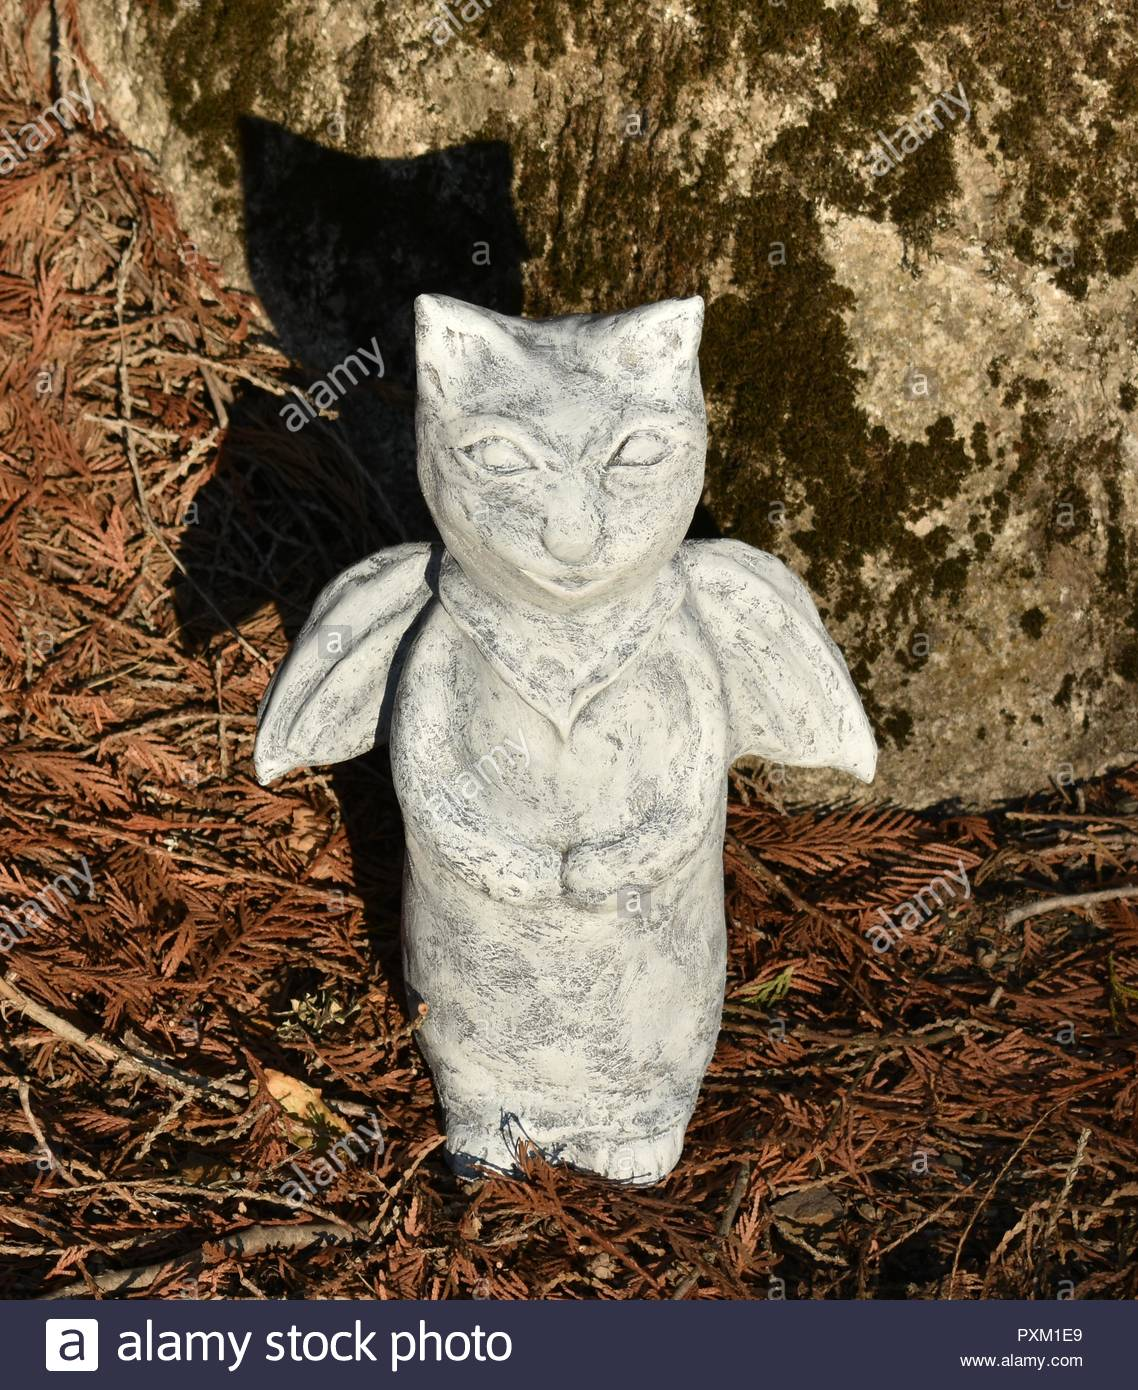 Sunlight on bat cat sculpture casting shadow on moss covered boulder rock - Stock Image